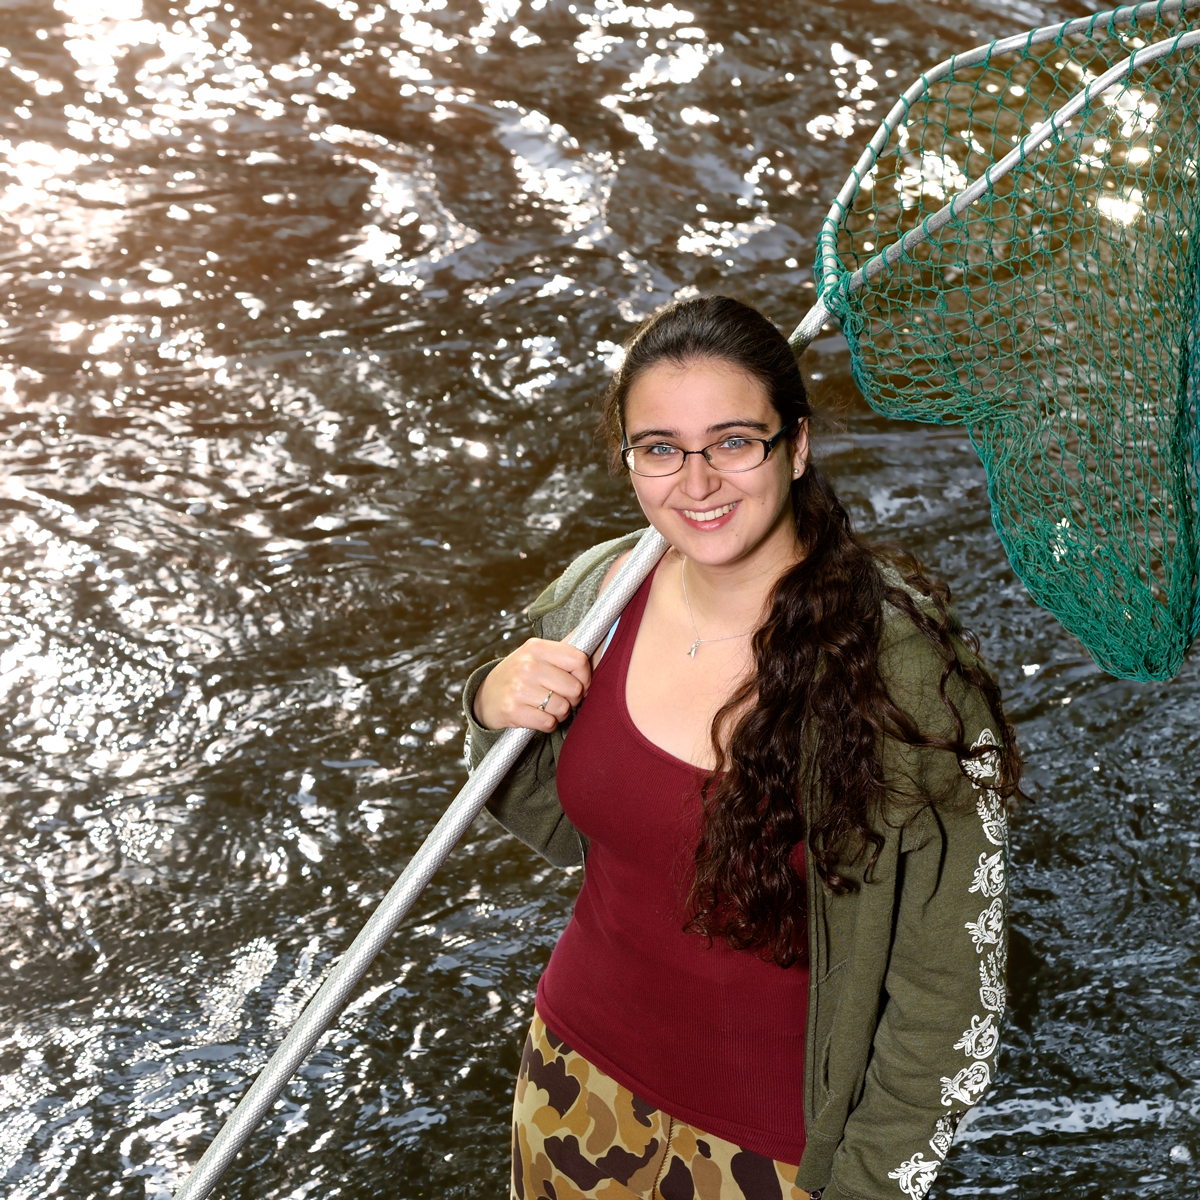 Clara Lepard standing in a body of water holding a net.